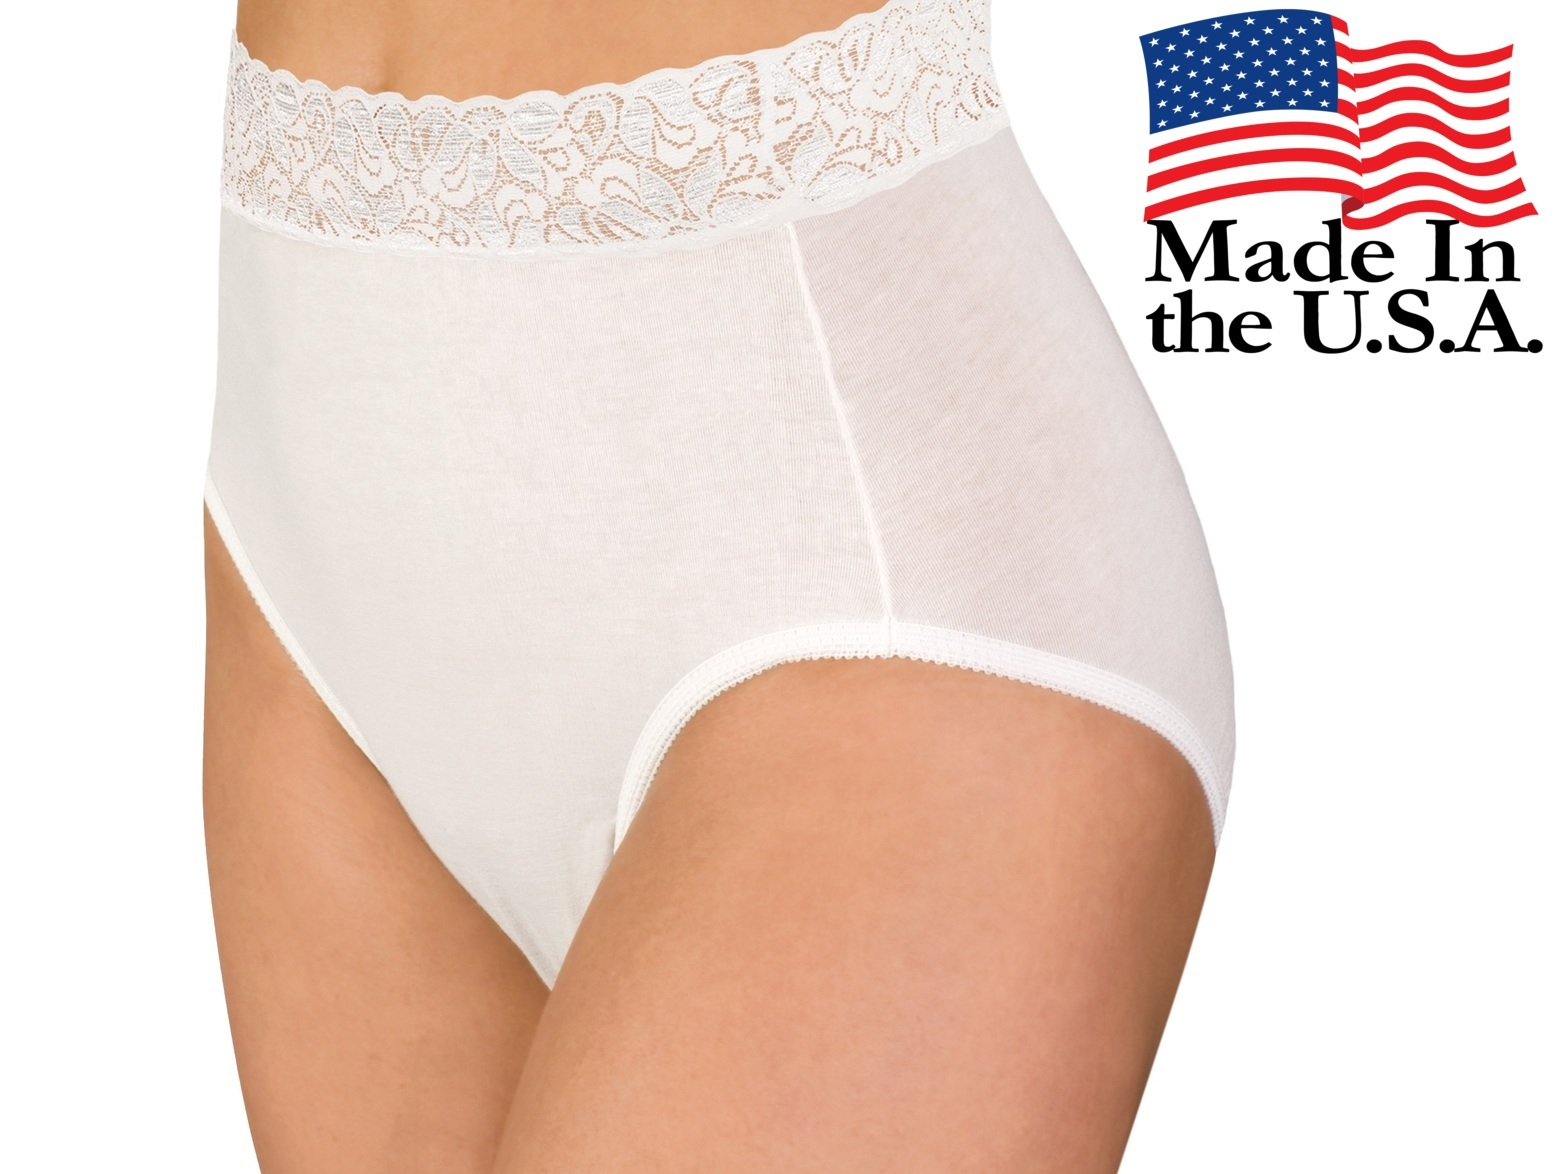 0ea521a5db21 3-Pack Wearever Women's Lace Trim and Cotton Incontinence Panties - Washable  Reusable Bladder Control Underwear - Pack of 3 - Walmart.com